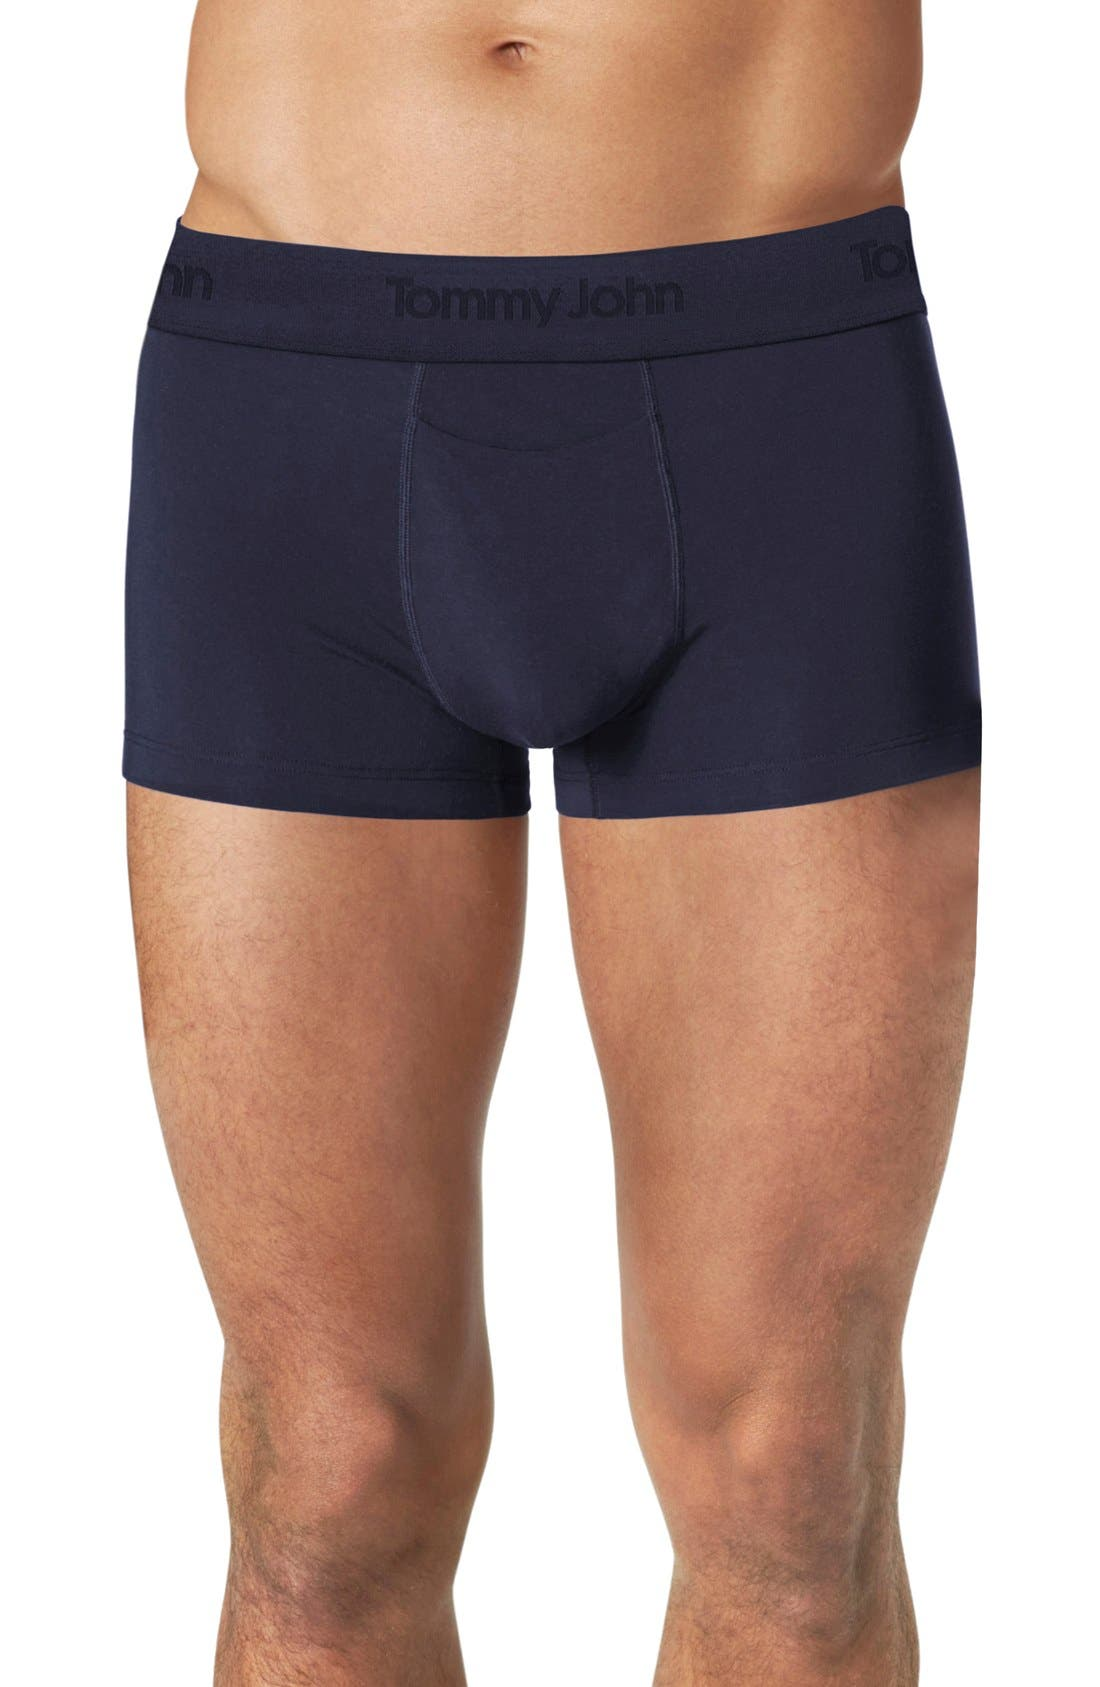 Second Skin Square Cut Trunks,                         Main,                         color, Dress Blues